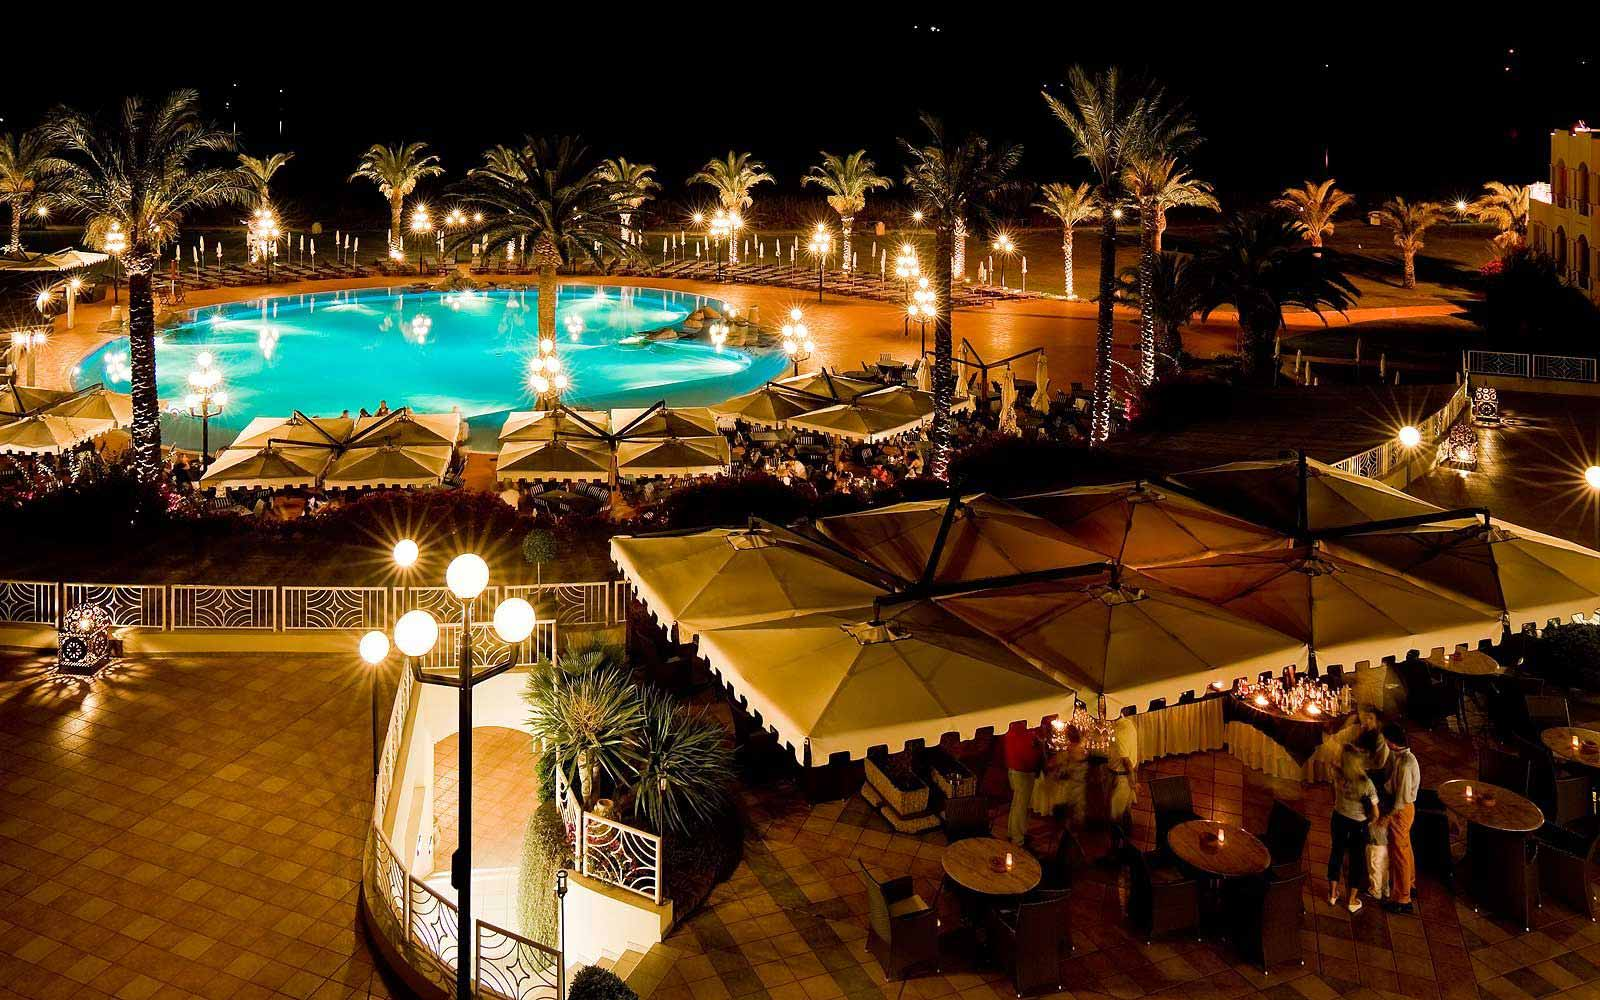 Pullman Timi Ama Sardegna's swimming pool area at night